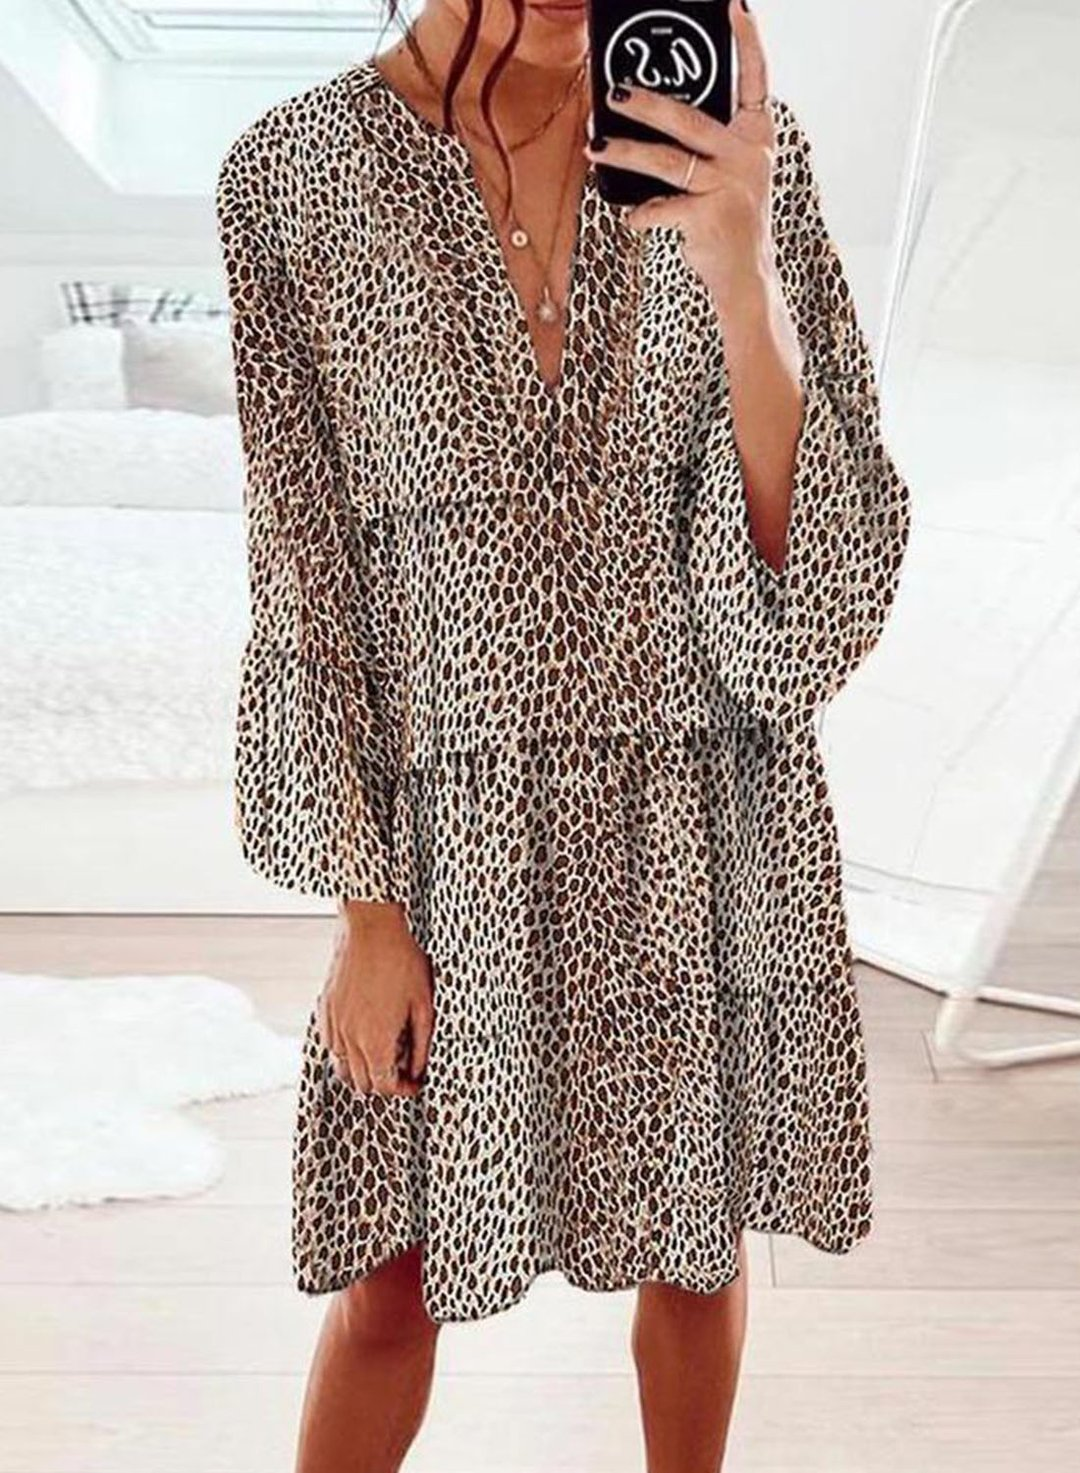 Leopard Women's Dresses Leopard Long Sleeve Shift V Neck Knee Length Dress LC225641-20